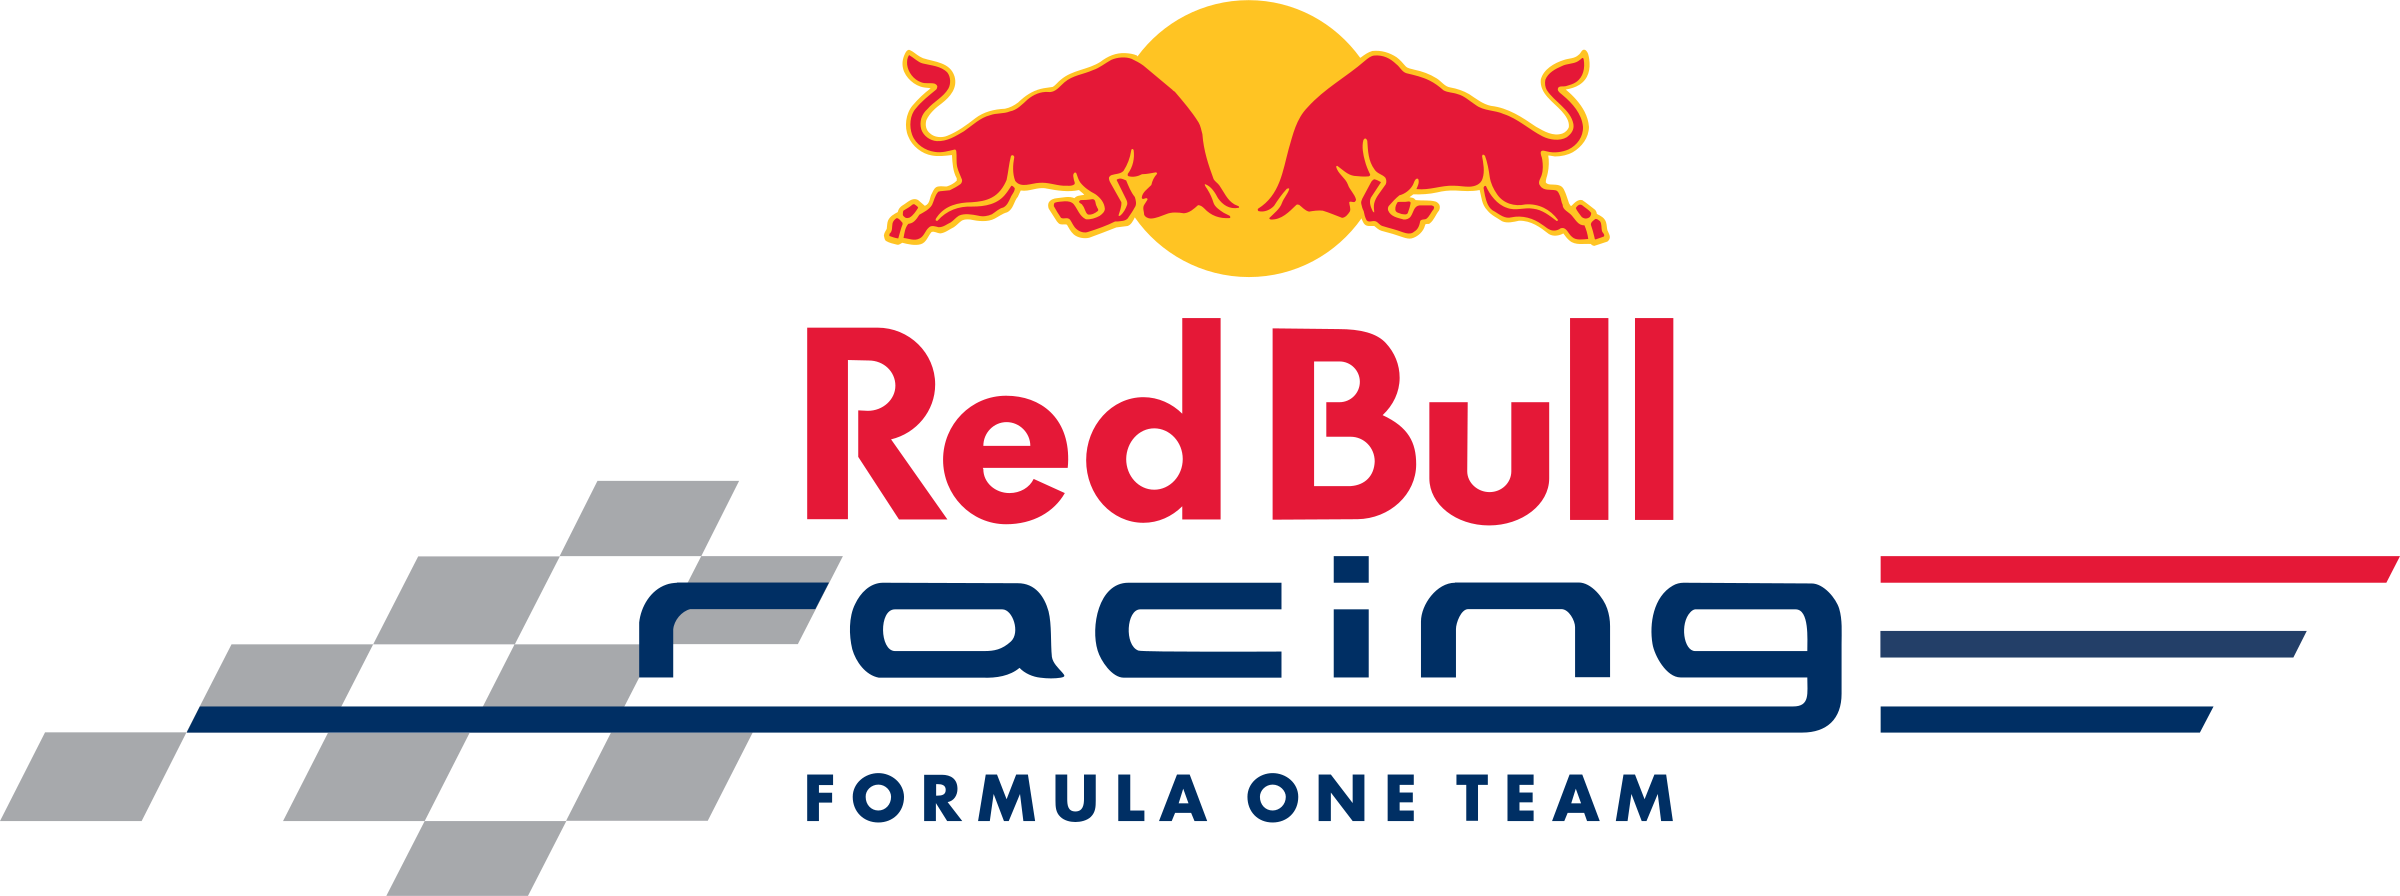 red bull racing formula one team logo png transparent svg vector rh freebiesupply com red bull logo vector free download red bull logo vector art